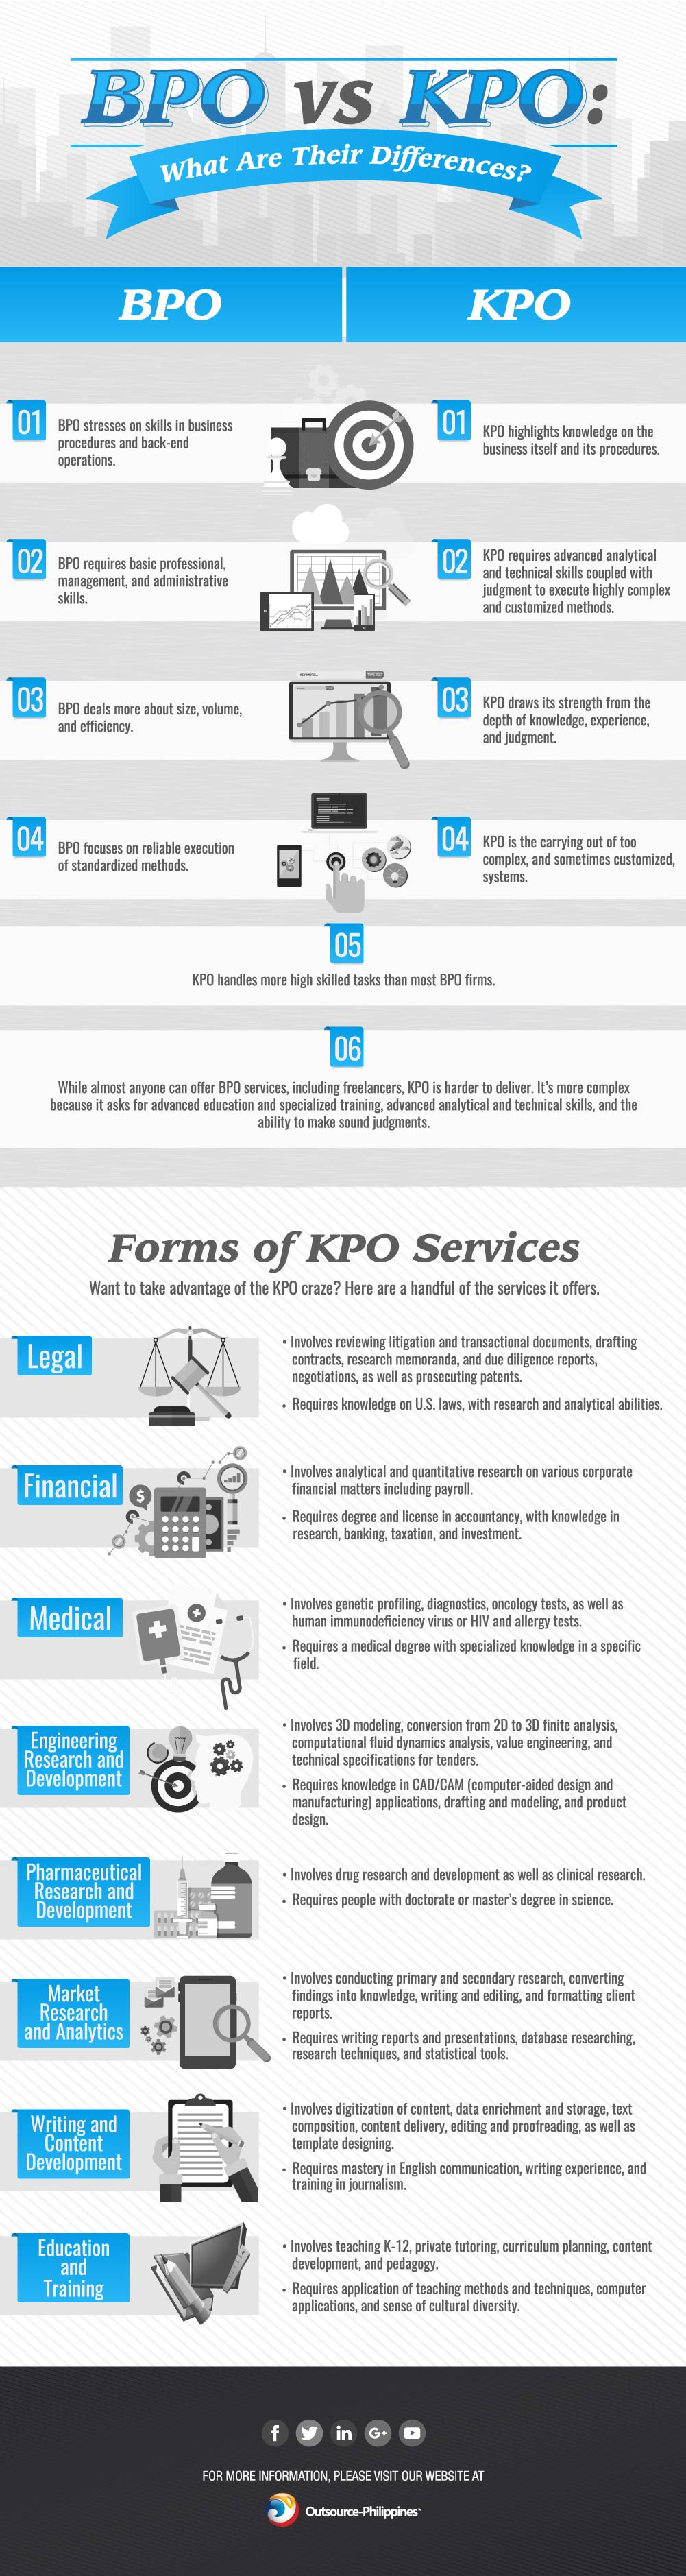 Infographic: BPO vs KPO What Are Their Differences